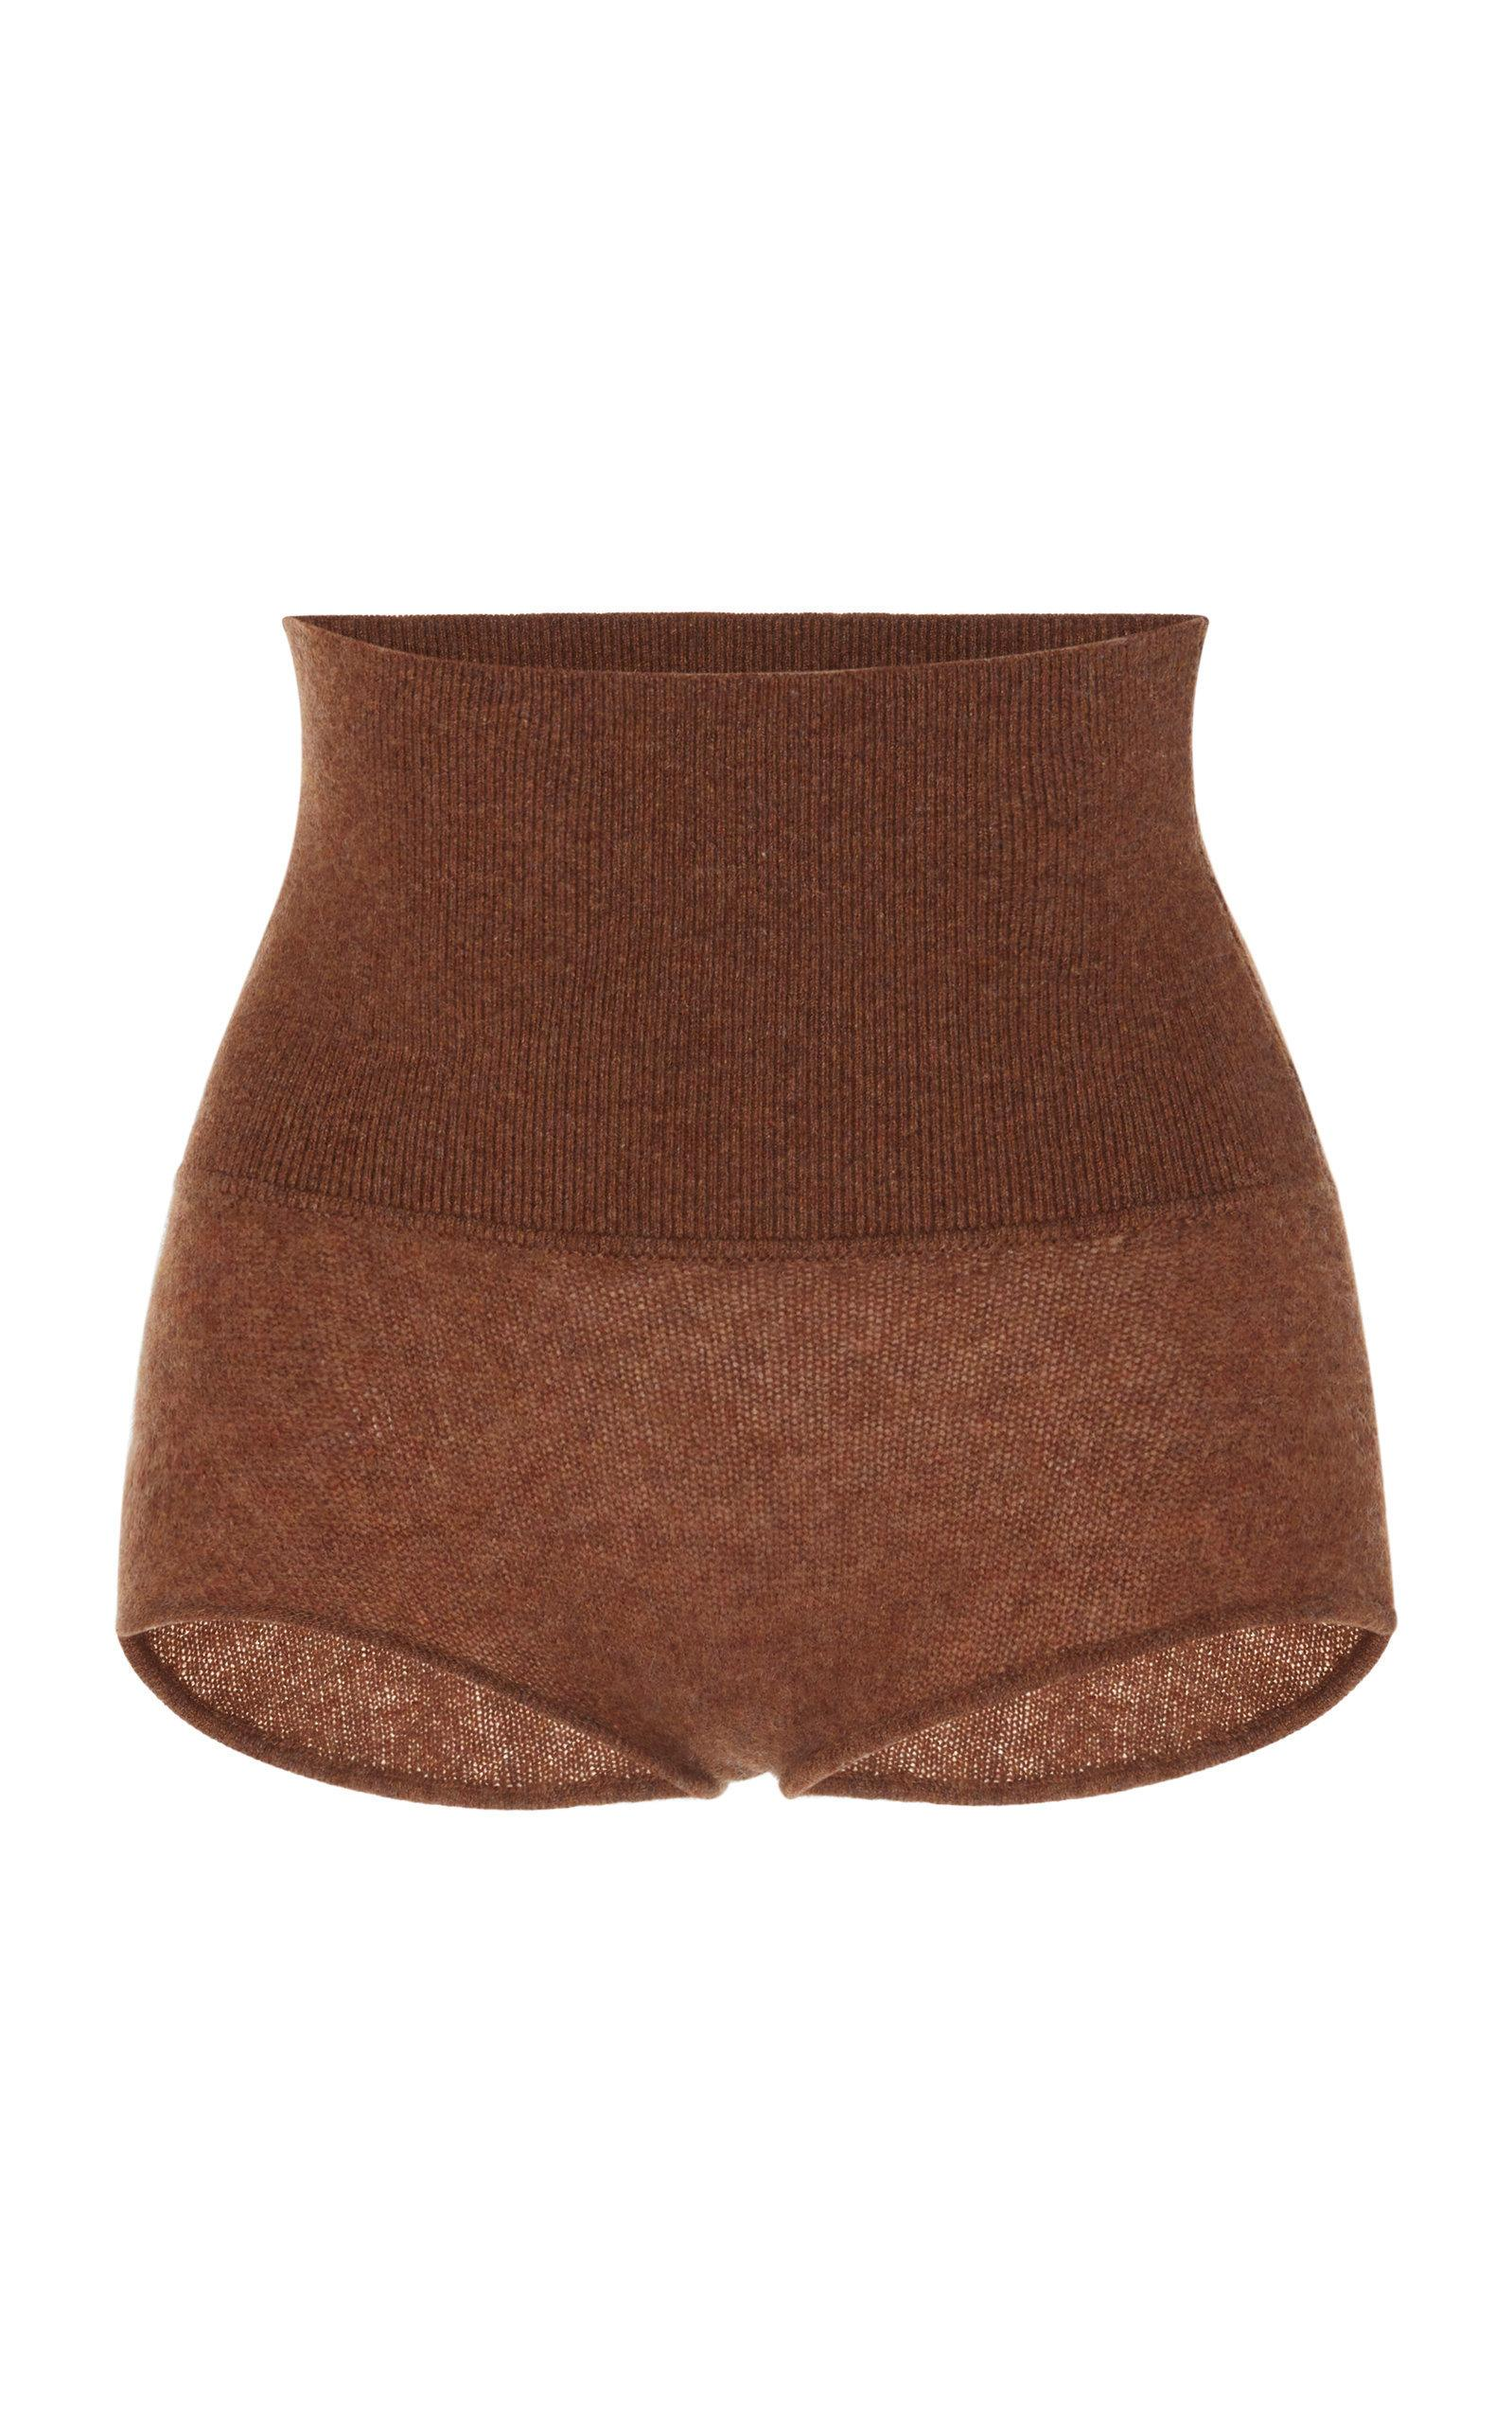 Khaite Belinda Cashmere Shorts In Brown